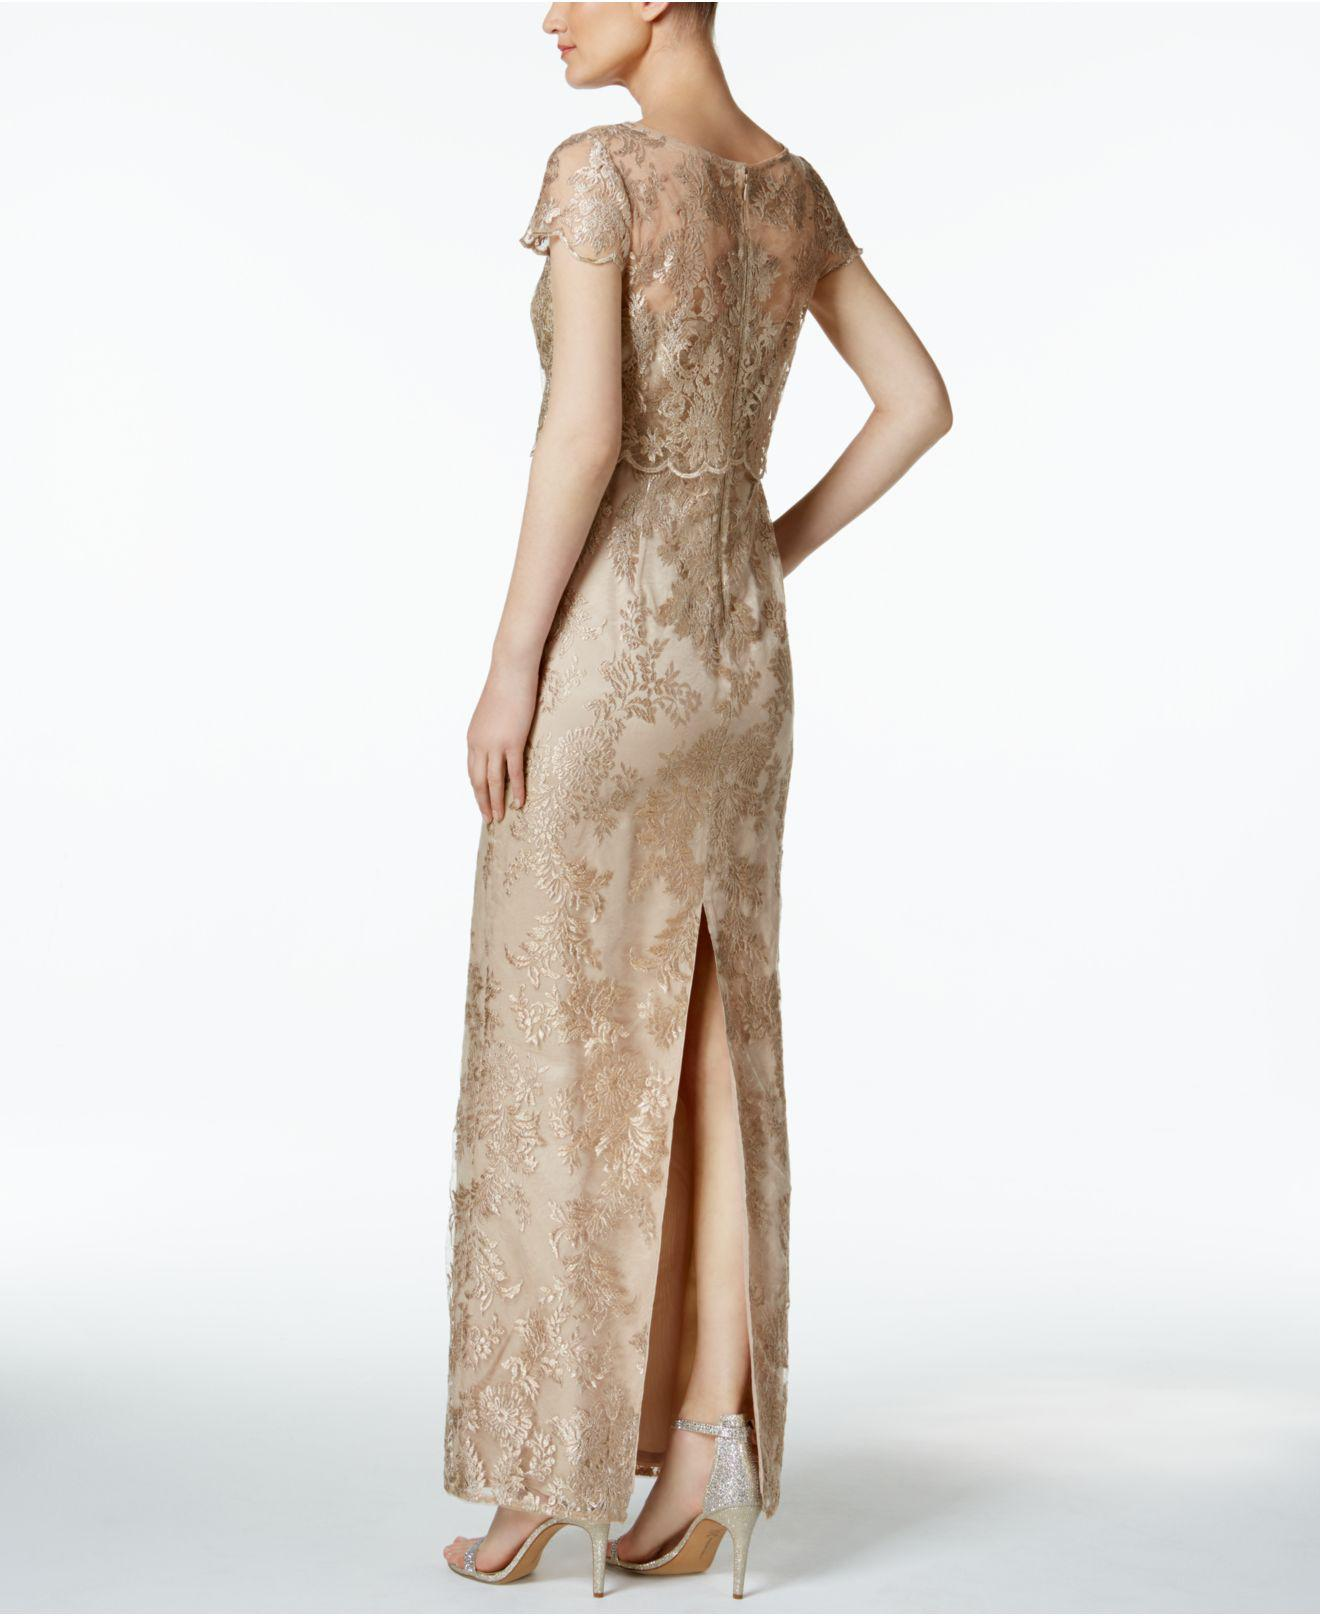 Lyst - Adrianna Papell Petite Embroidered Mesh Popover Gown